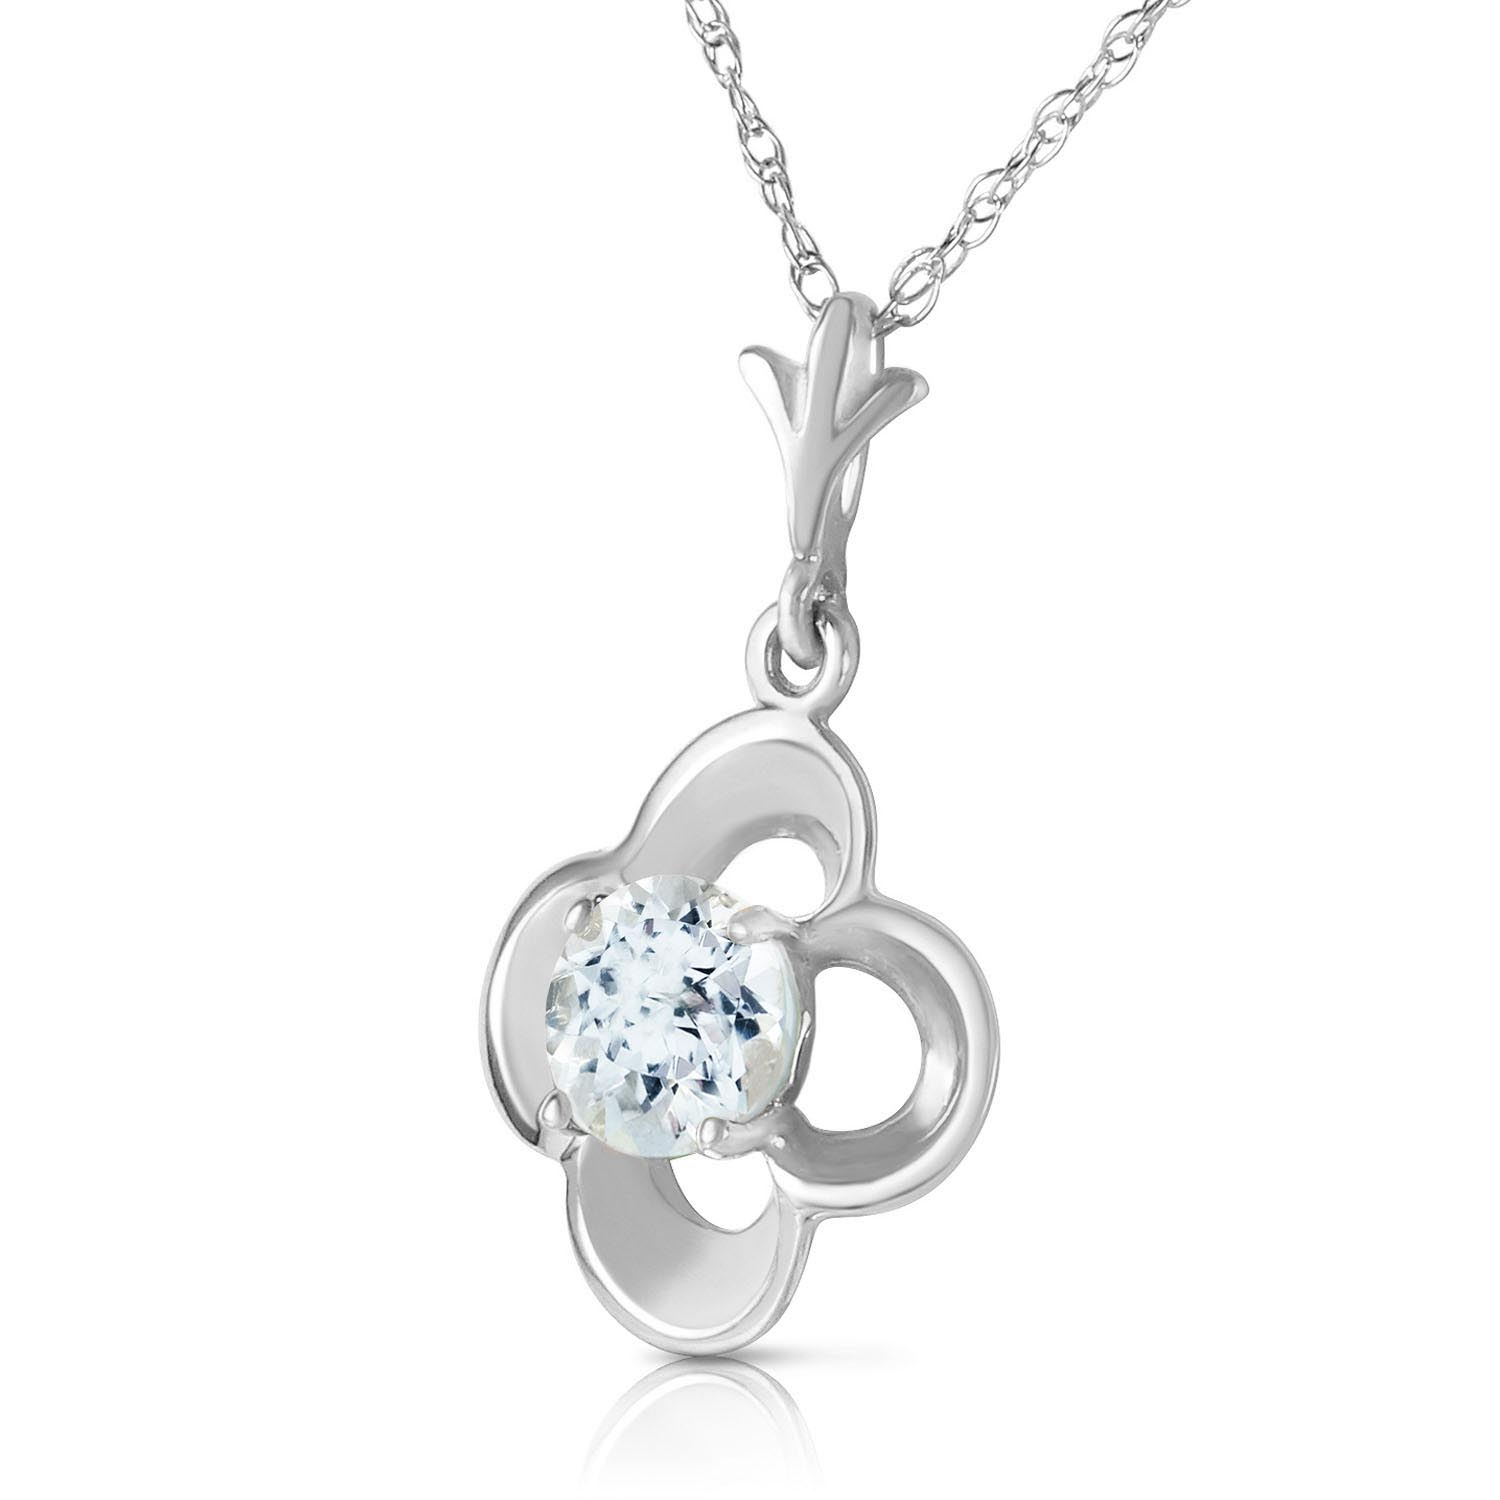 Aquamarine Corona Pendant Necklace 0.55ct in 9ct White Gold